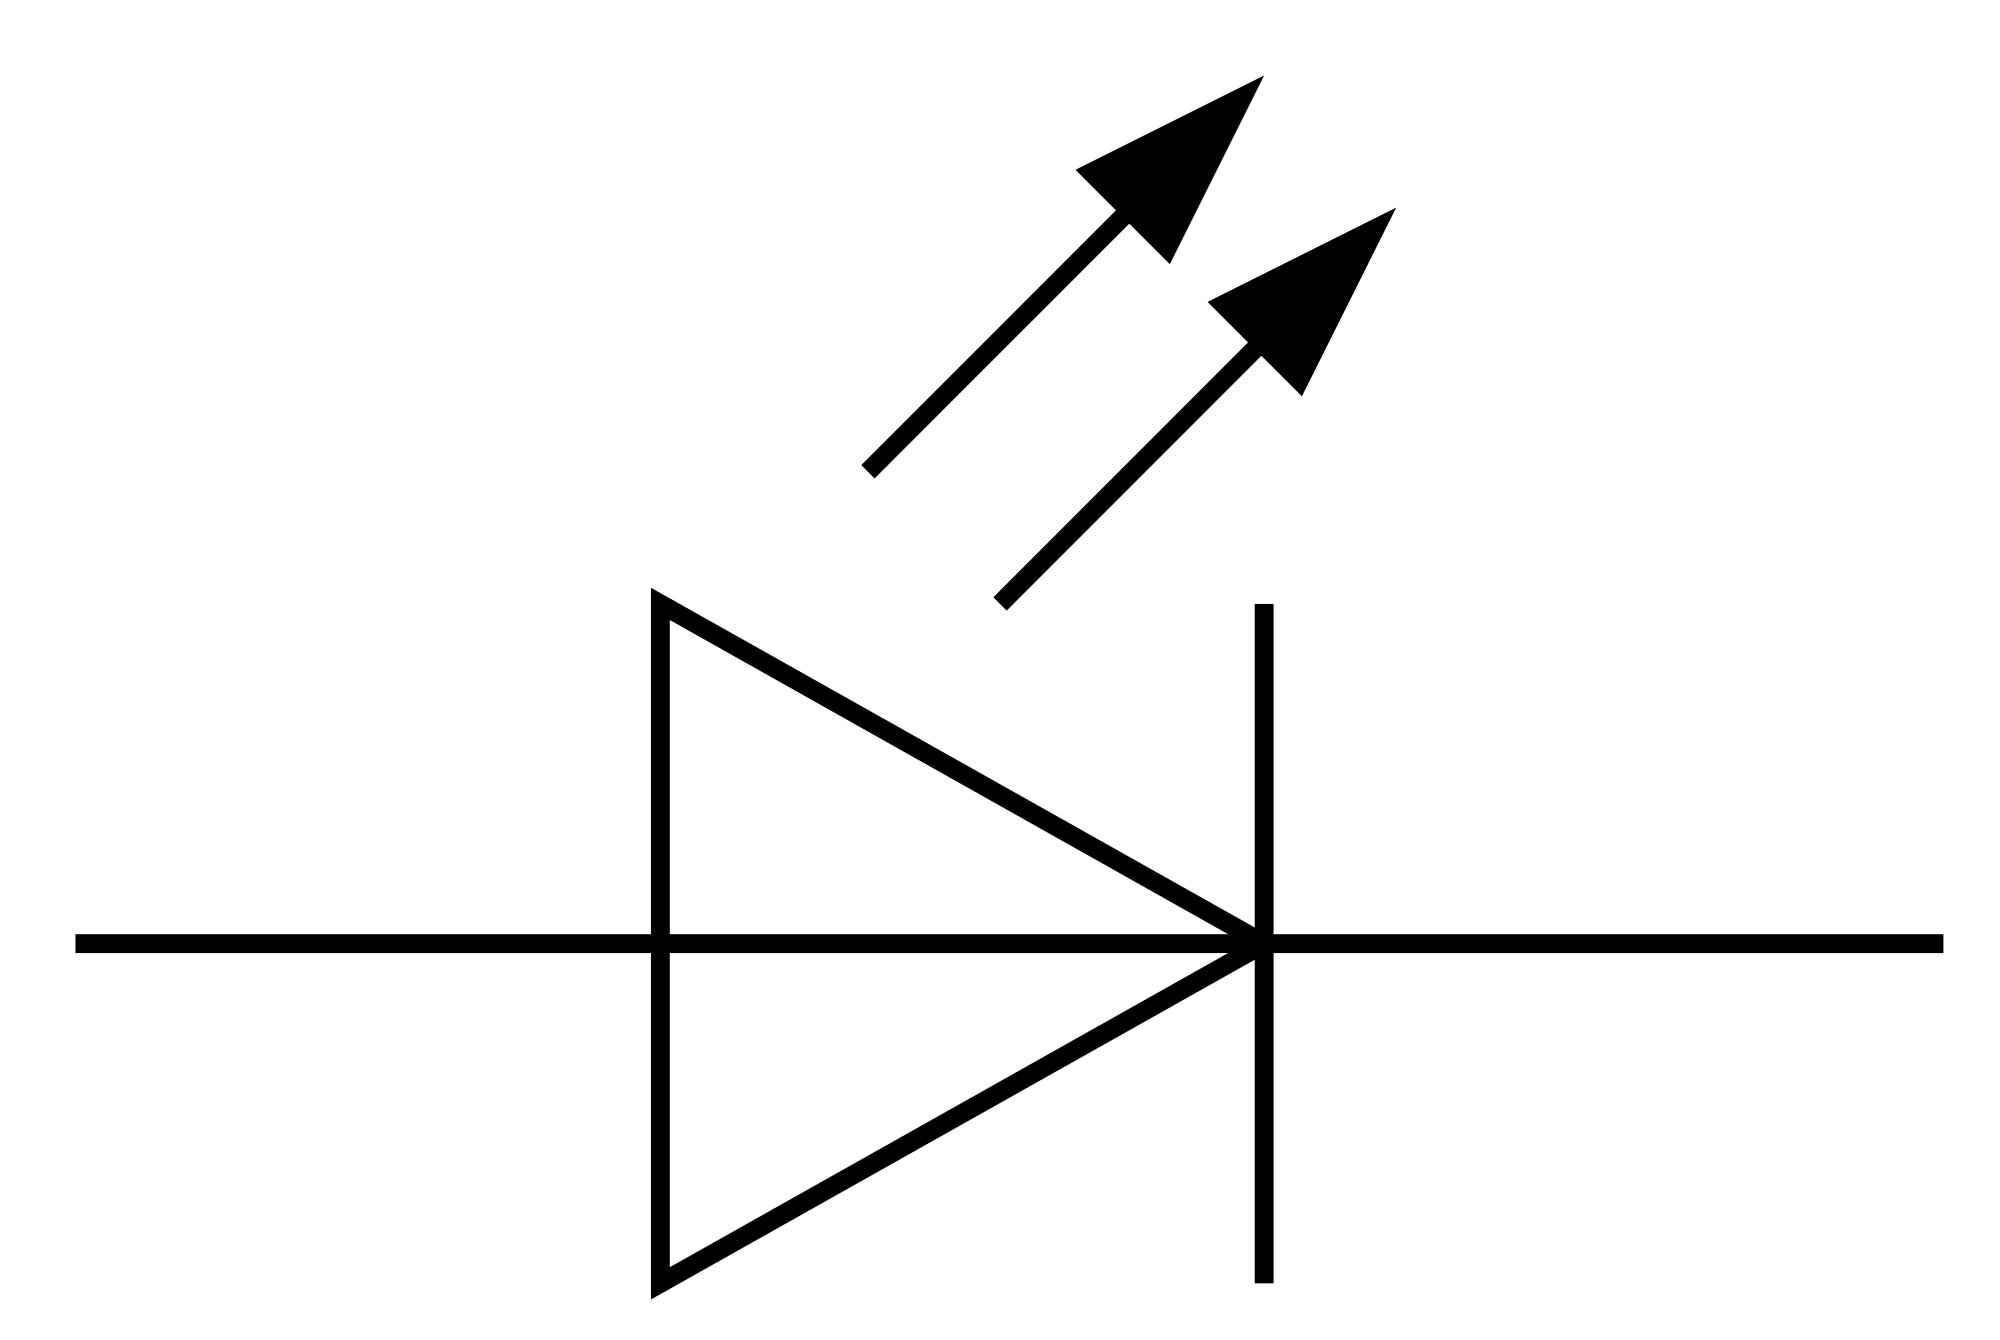 led schematic symbol